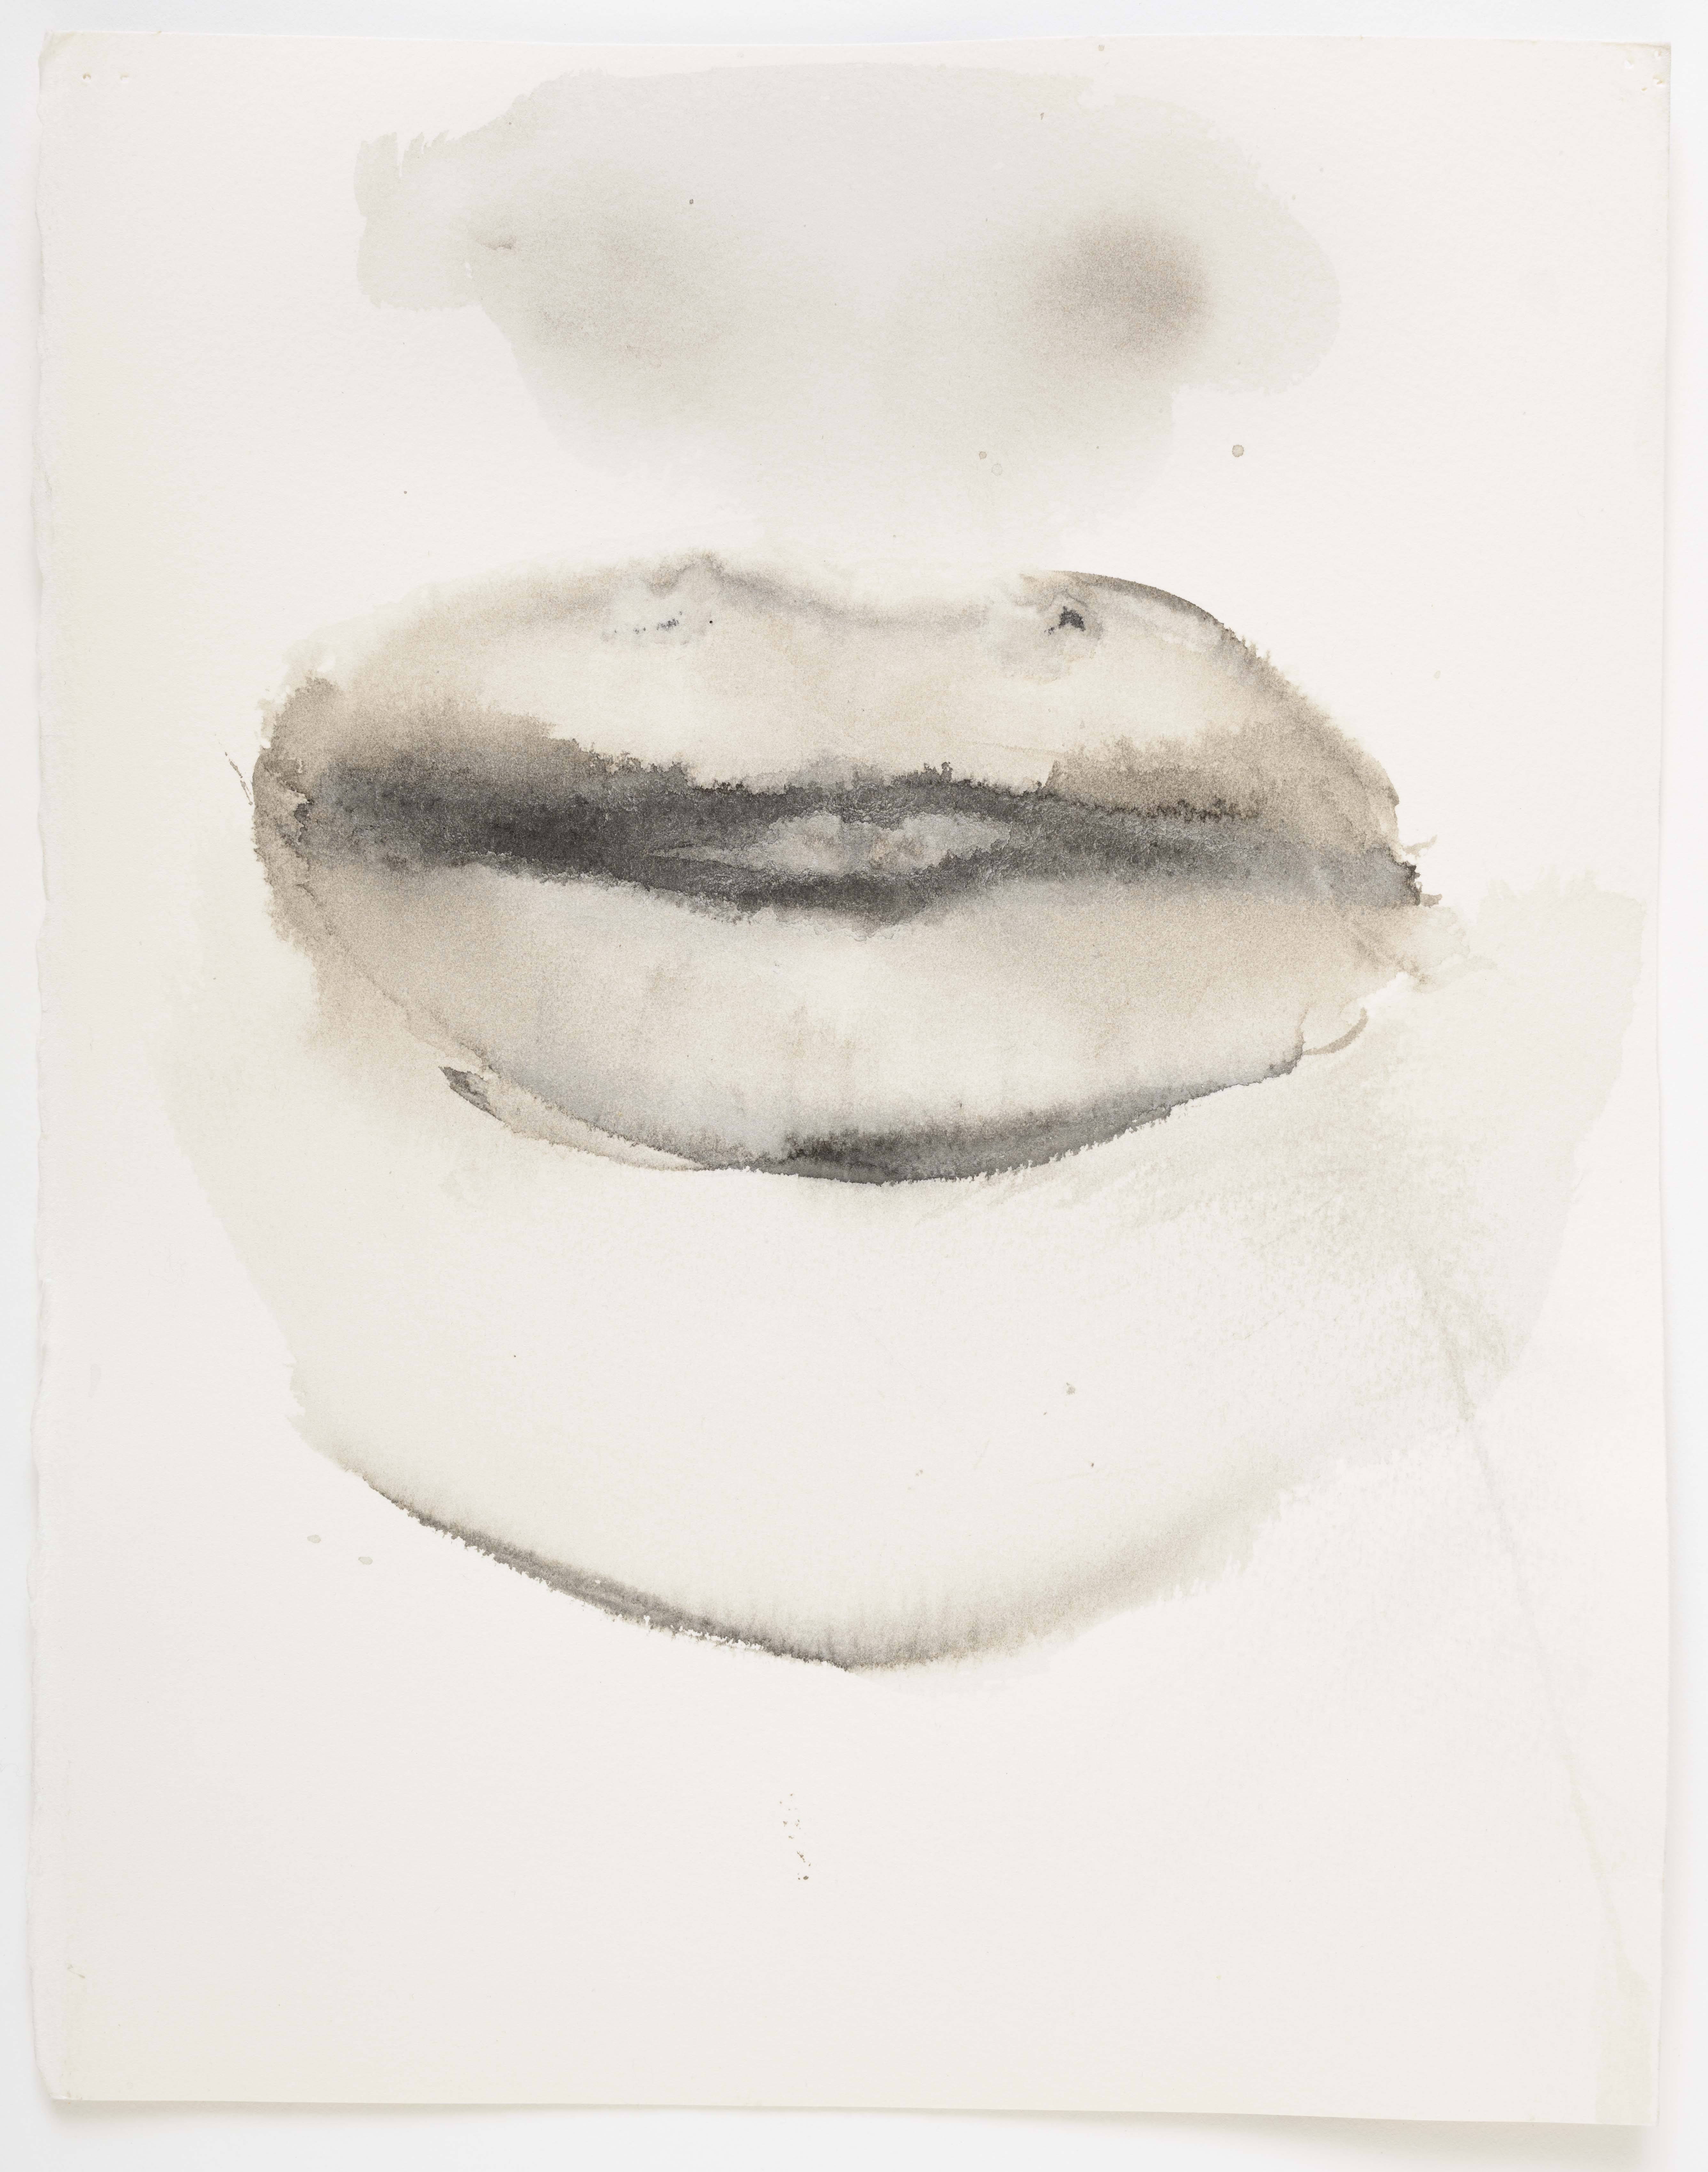 """Marlene Dumas, """"She speaks"""", 2015-2016, Ink wash and metallic acrylic on paper 11 7/8 x 9 1/4 inches 30 x 23.5 cm. Exposition """"Myths & Mortals"""", Galerie David Zwirner, New-York"""